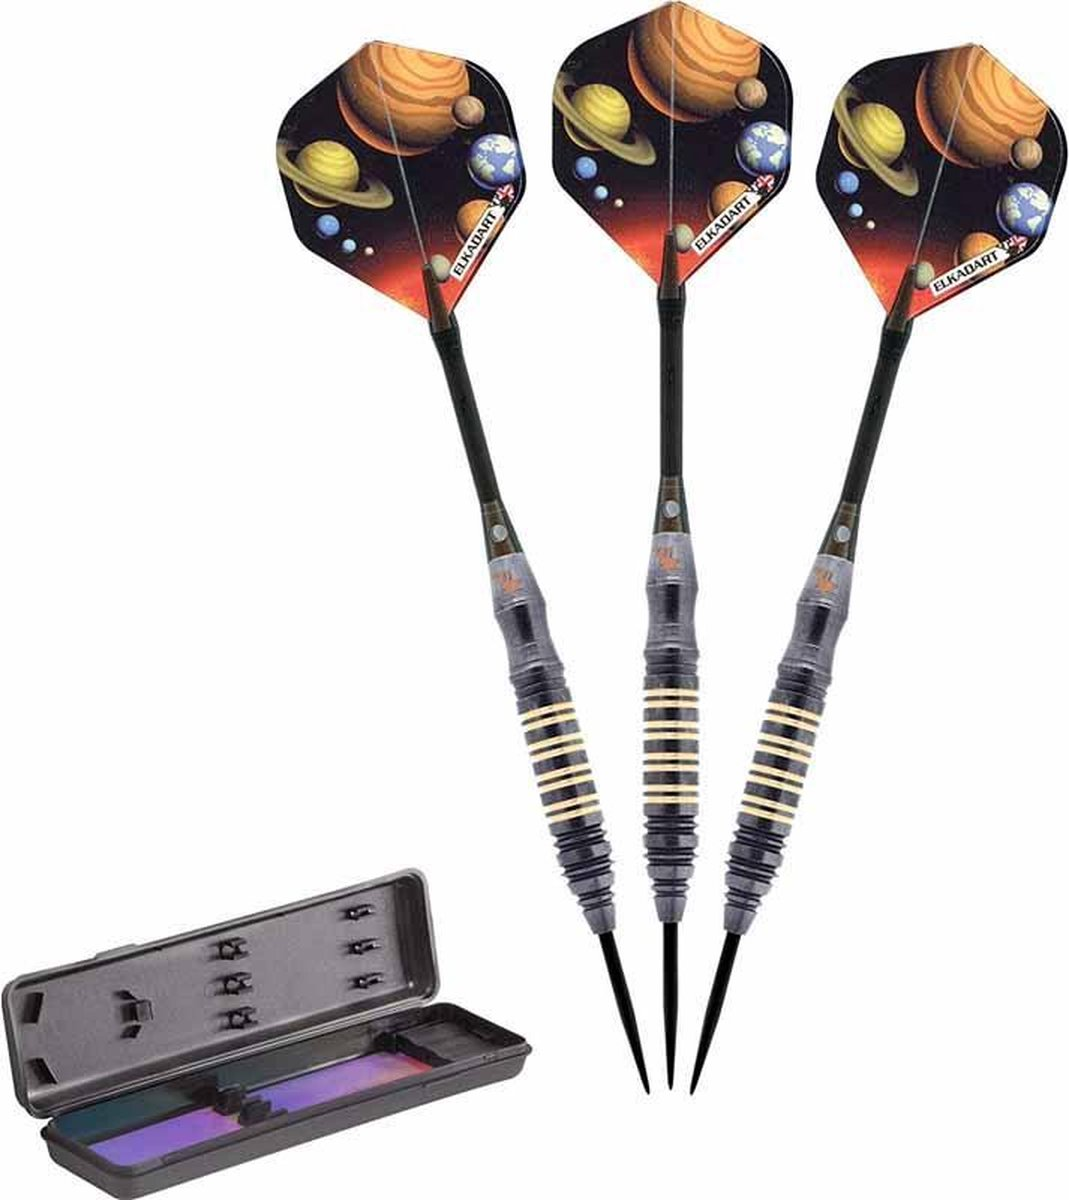 ABC Darts - Dartpijlen supergrip - Orbital space - 21 gram